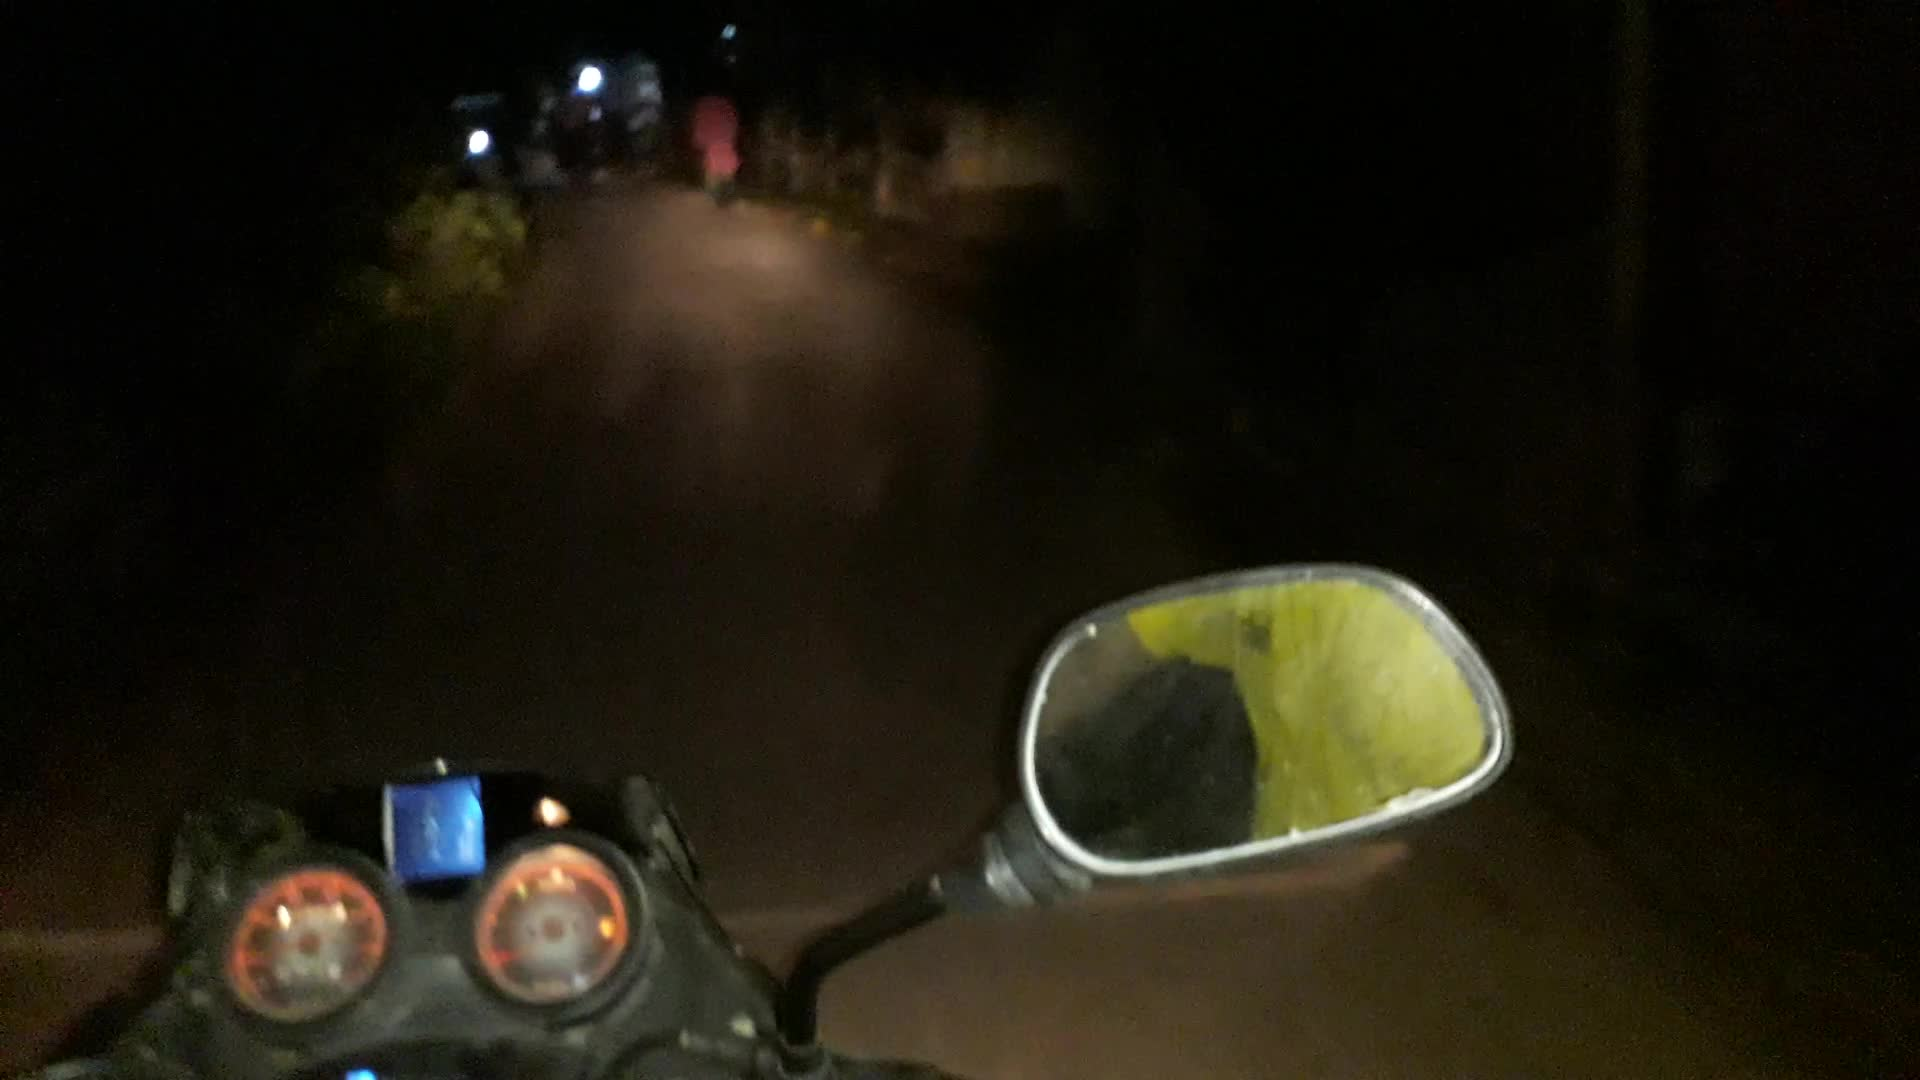 The road is very nice to ride and the night is very nice.Riding a bike at a lot of speed is a lot of fun.